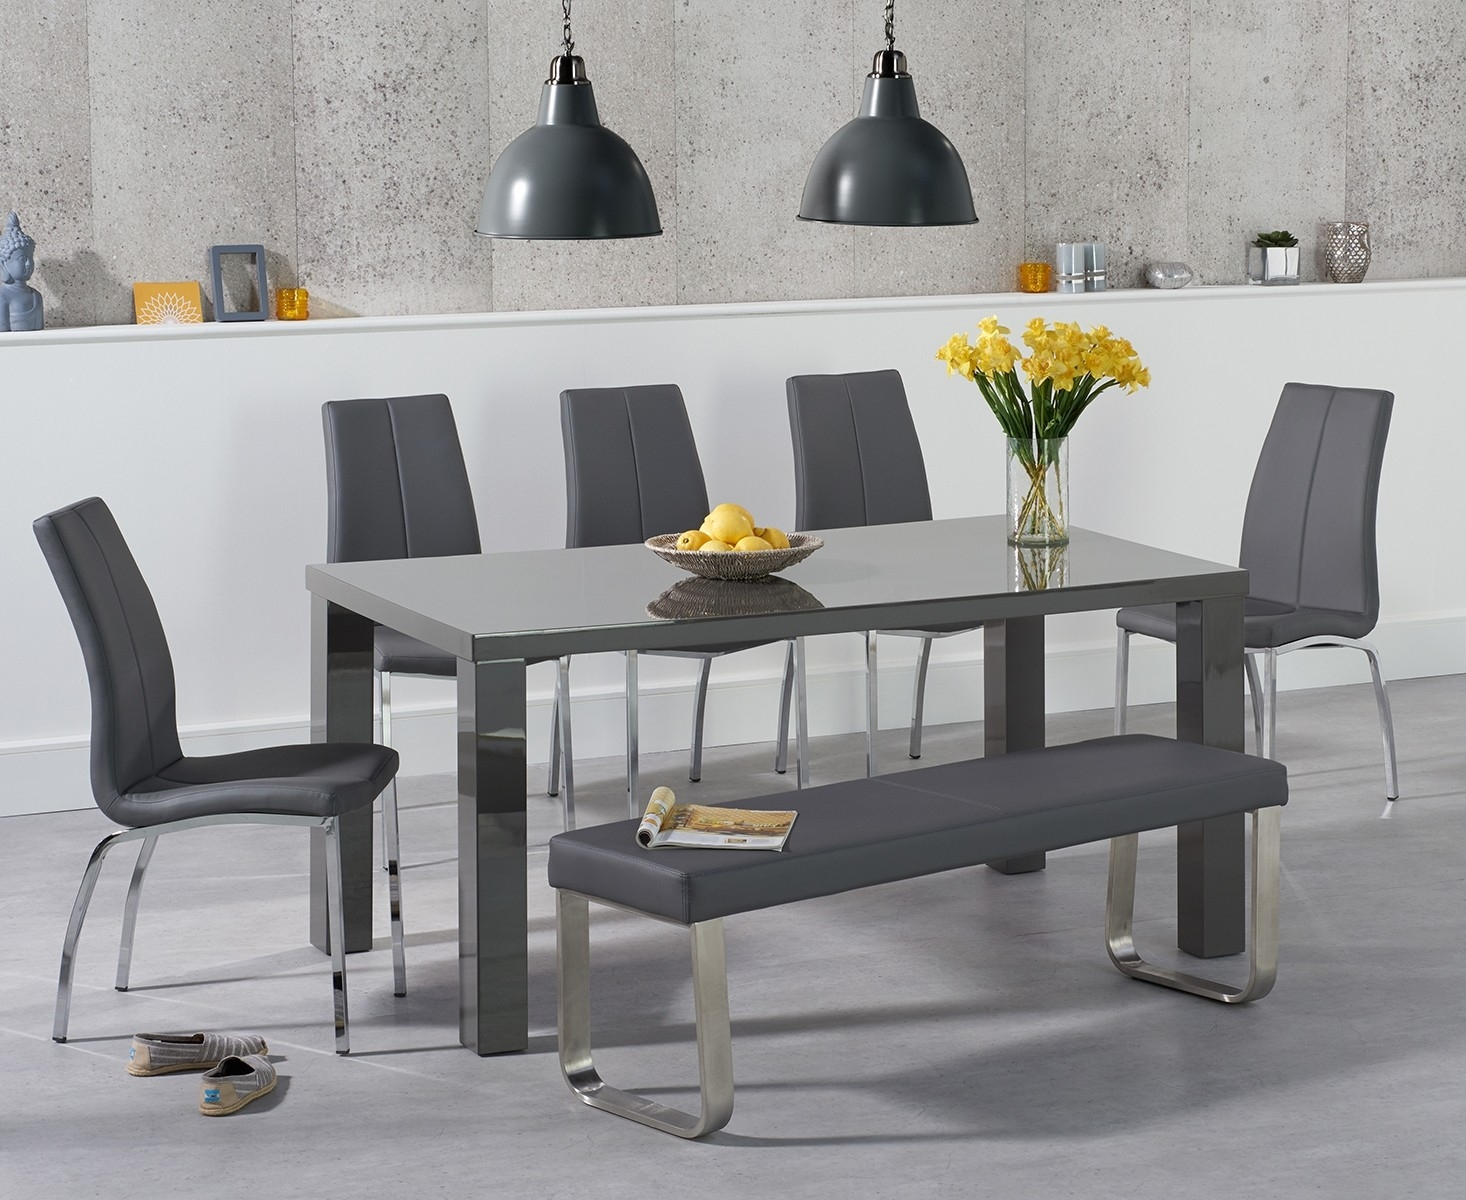 An image of Atlanta 160cm Dark Grey High Gloss Dining Table with Cavello Chairs and Atlanta ...